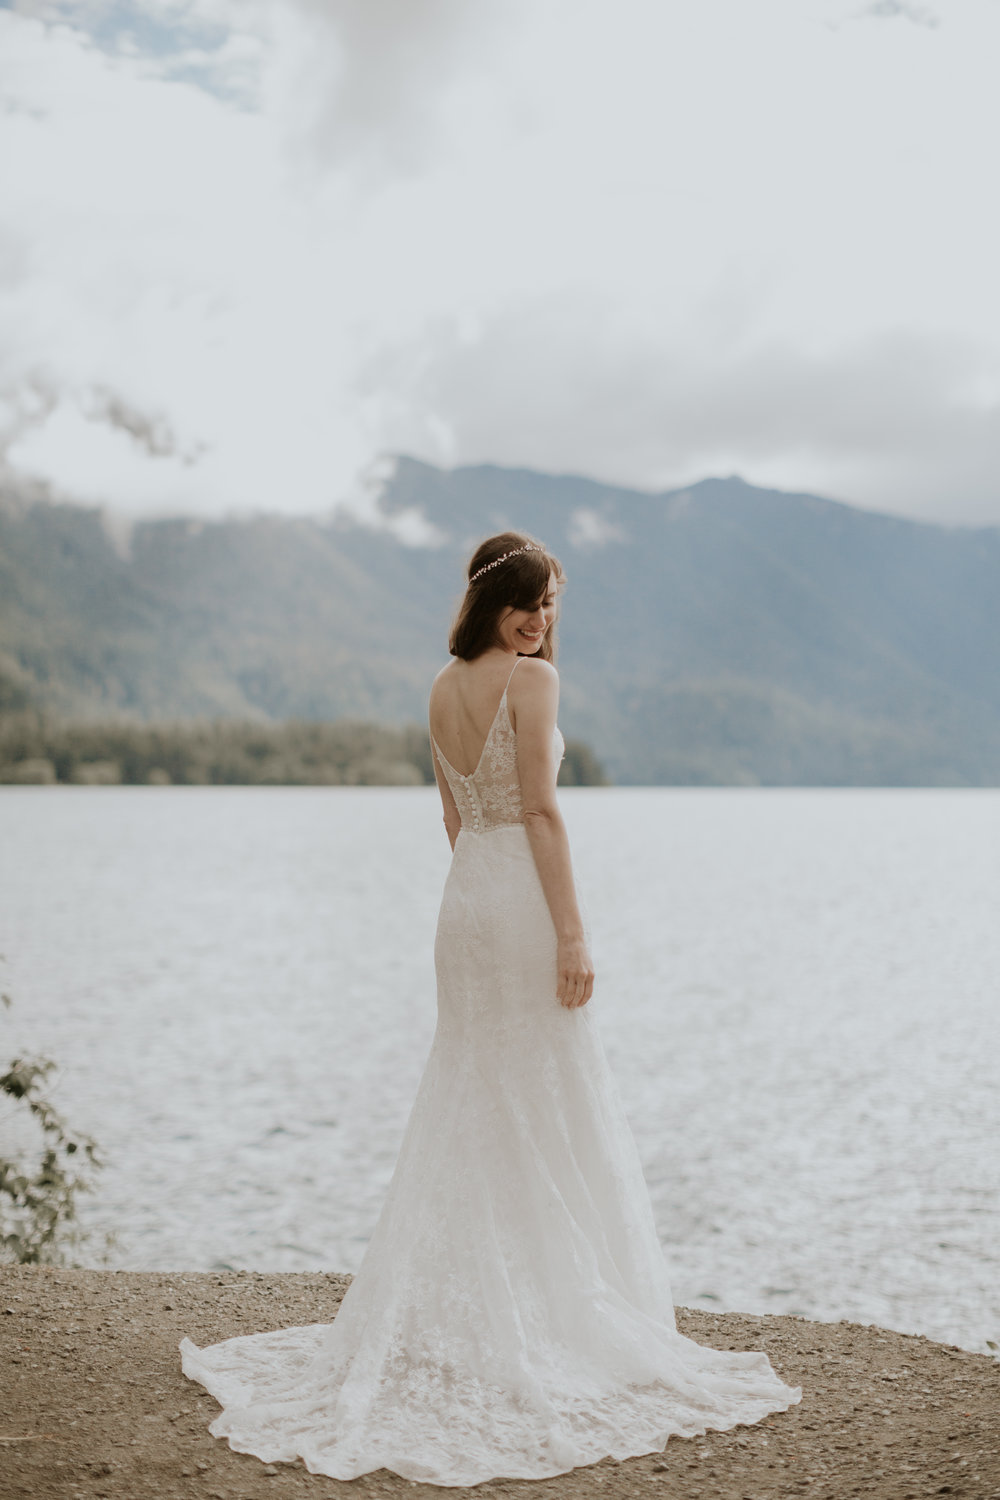 PNW-elopement-wedding-engagement-olympic national park-port angeles-hurricane ridge-lake crescent-kayla dawn photography- photographer-photography-kayladawnphoto-232.jpg